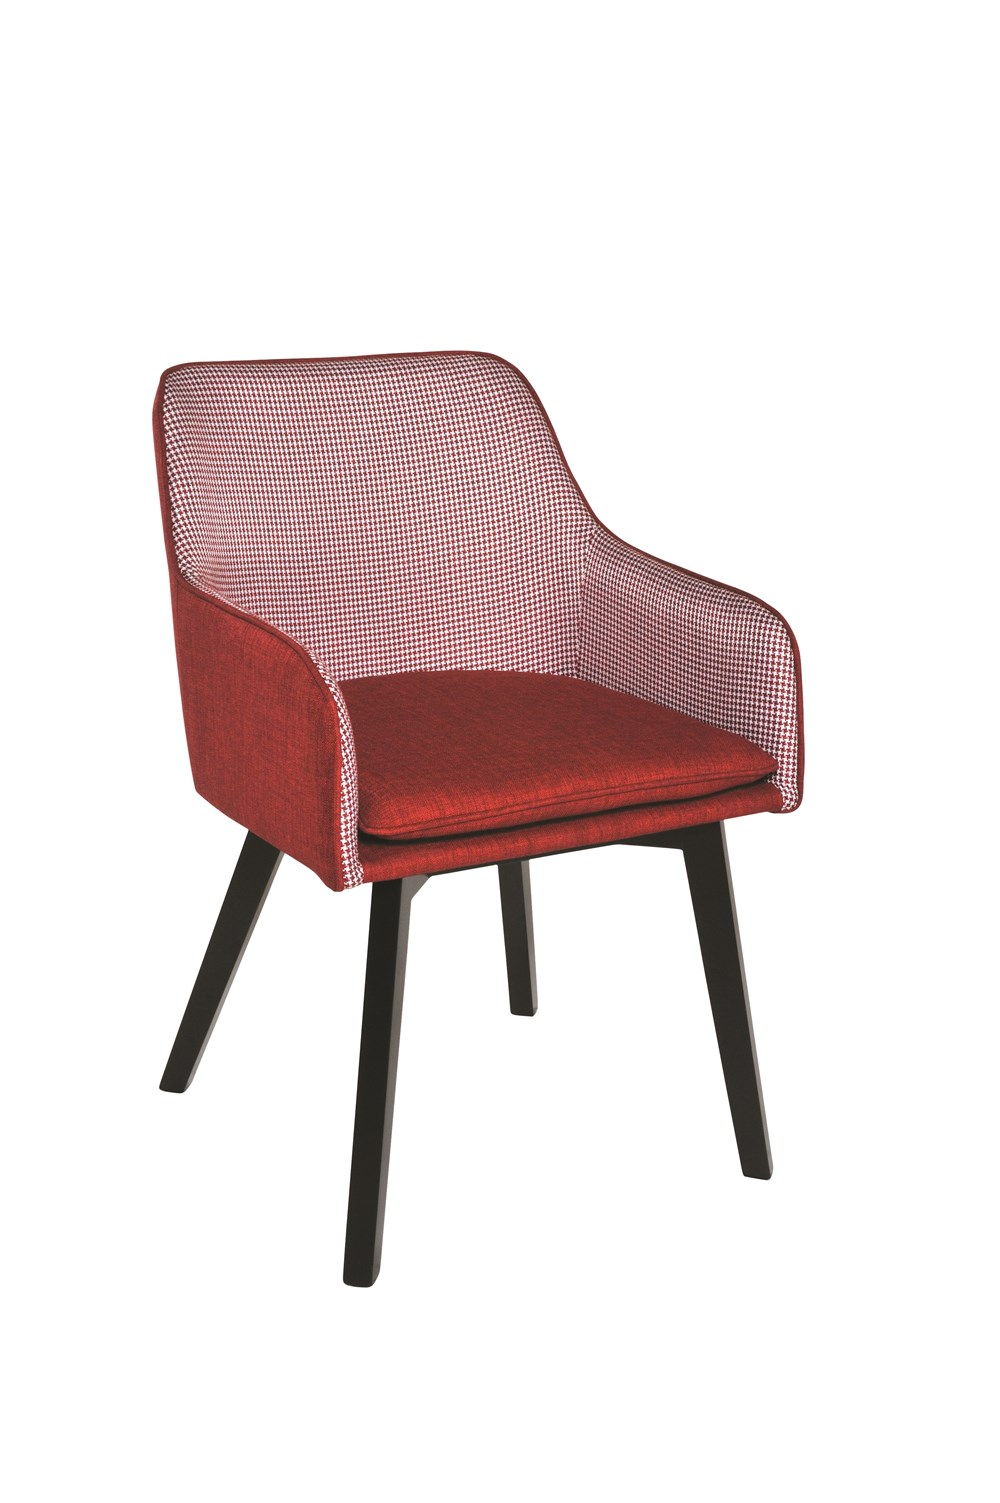 LOUISE Dining Chair in Red Houndstooth with Black Legs